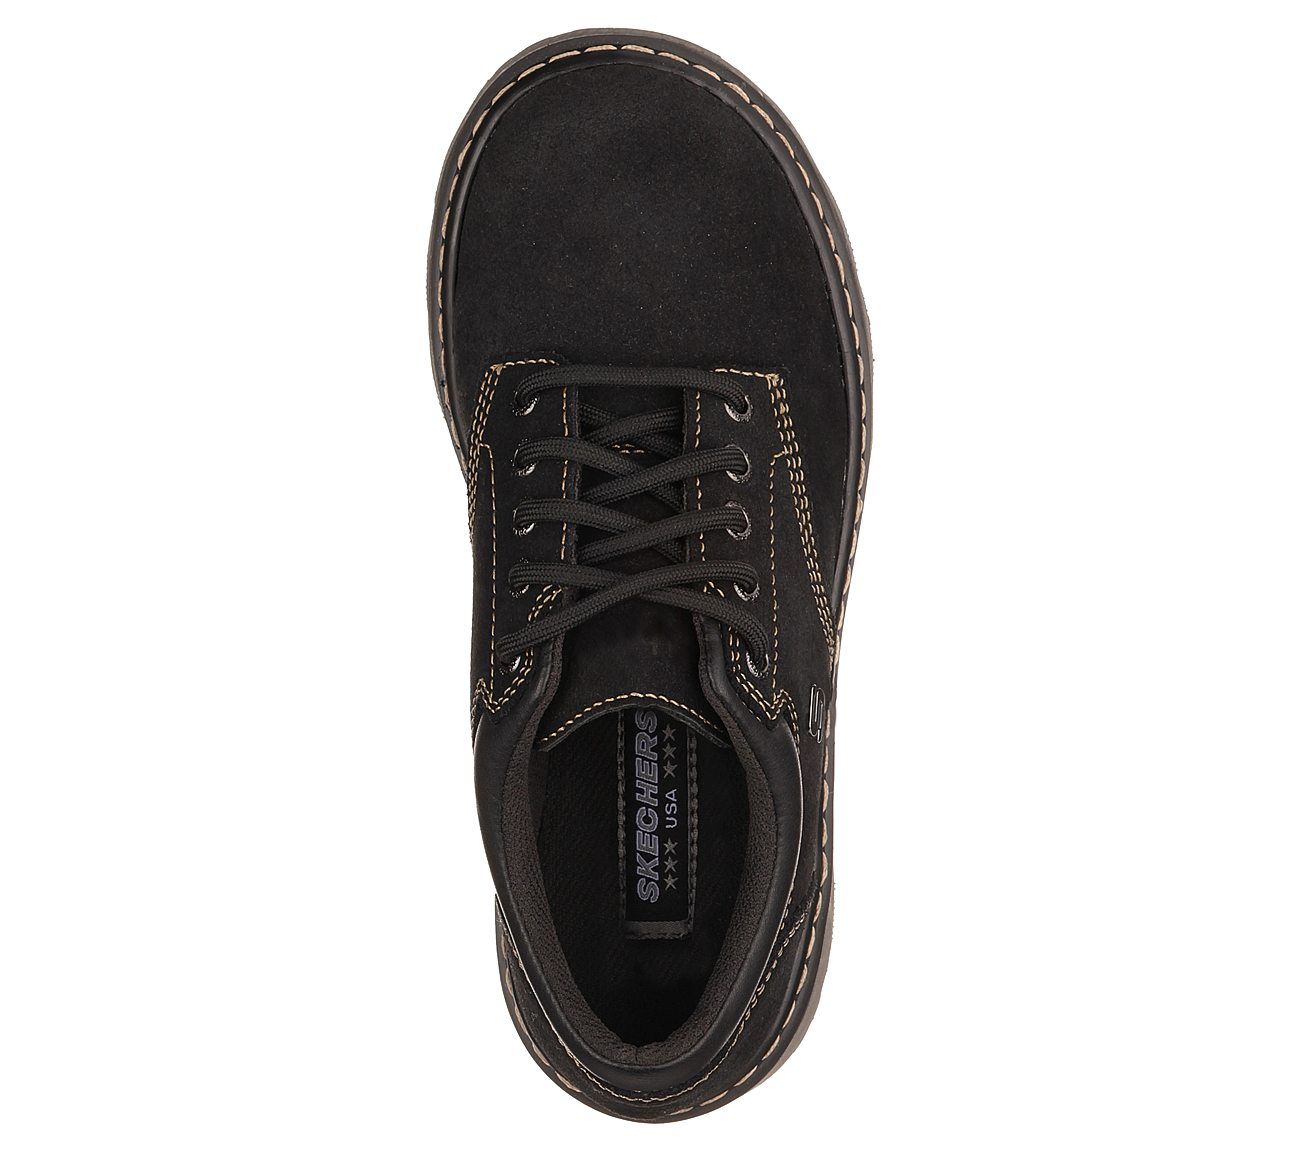 e2f75f2a4038 Buy SKECHERS Parties - Mate Modern Comfort Shoes only  55.00